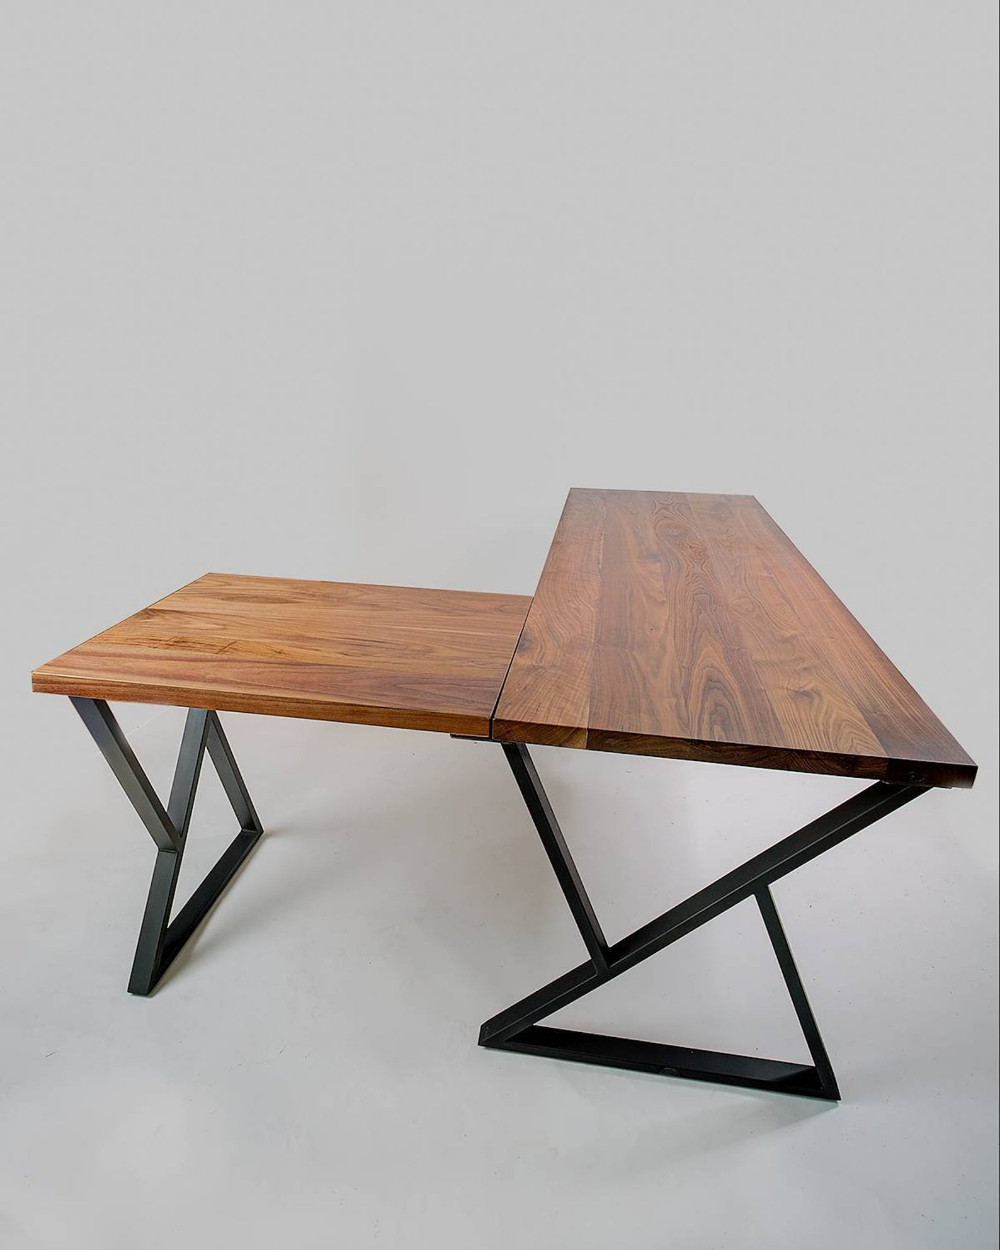 L Desk Walnut Desk Midcentury Modern Metal Base Free Etsy Walnut Desks Wood And Metal Desk Desk Modern Design